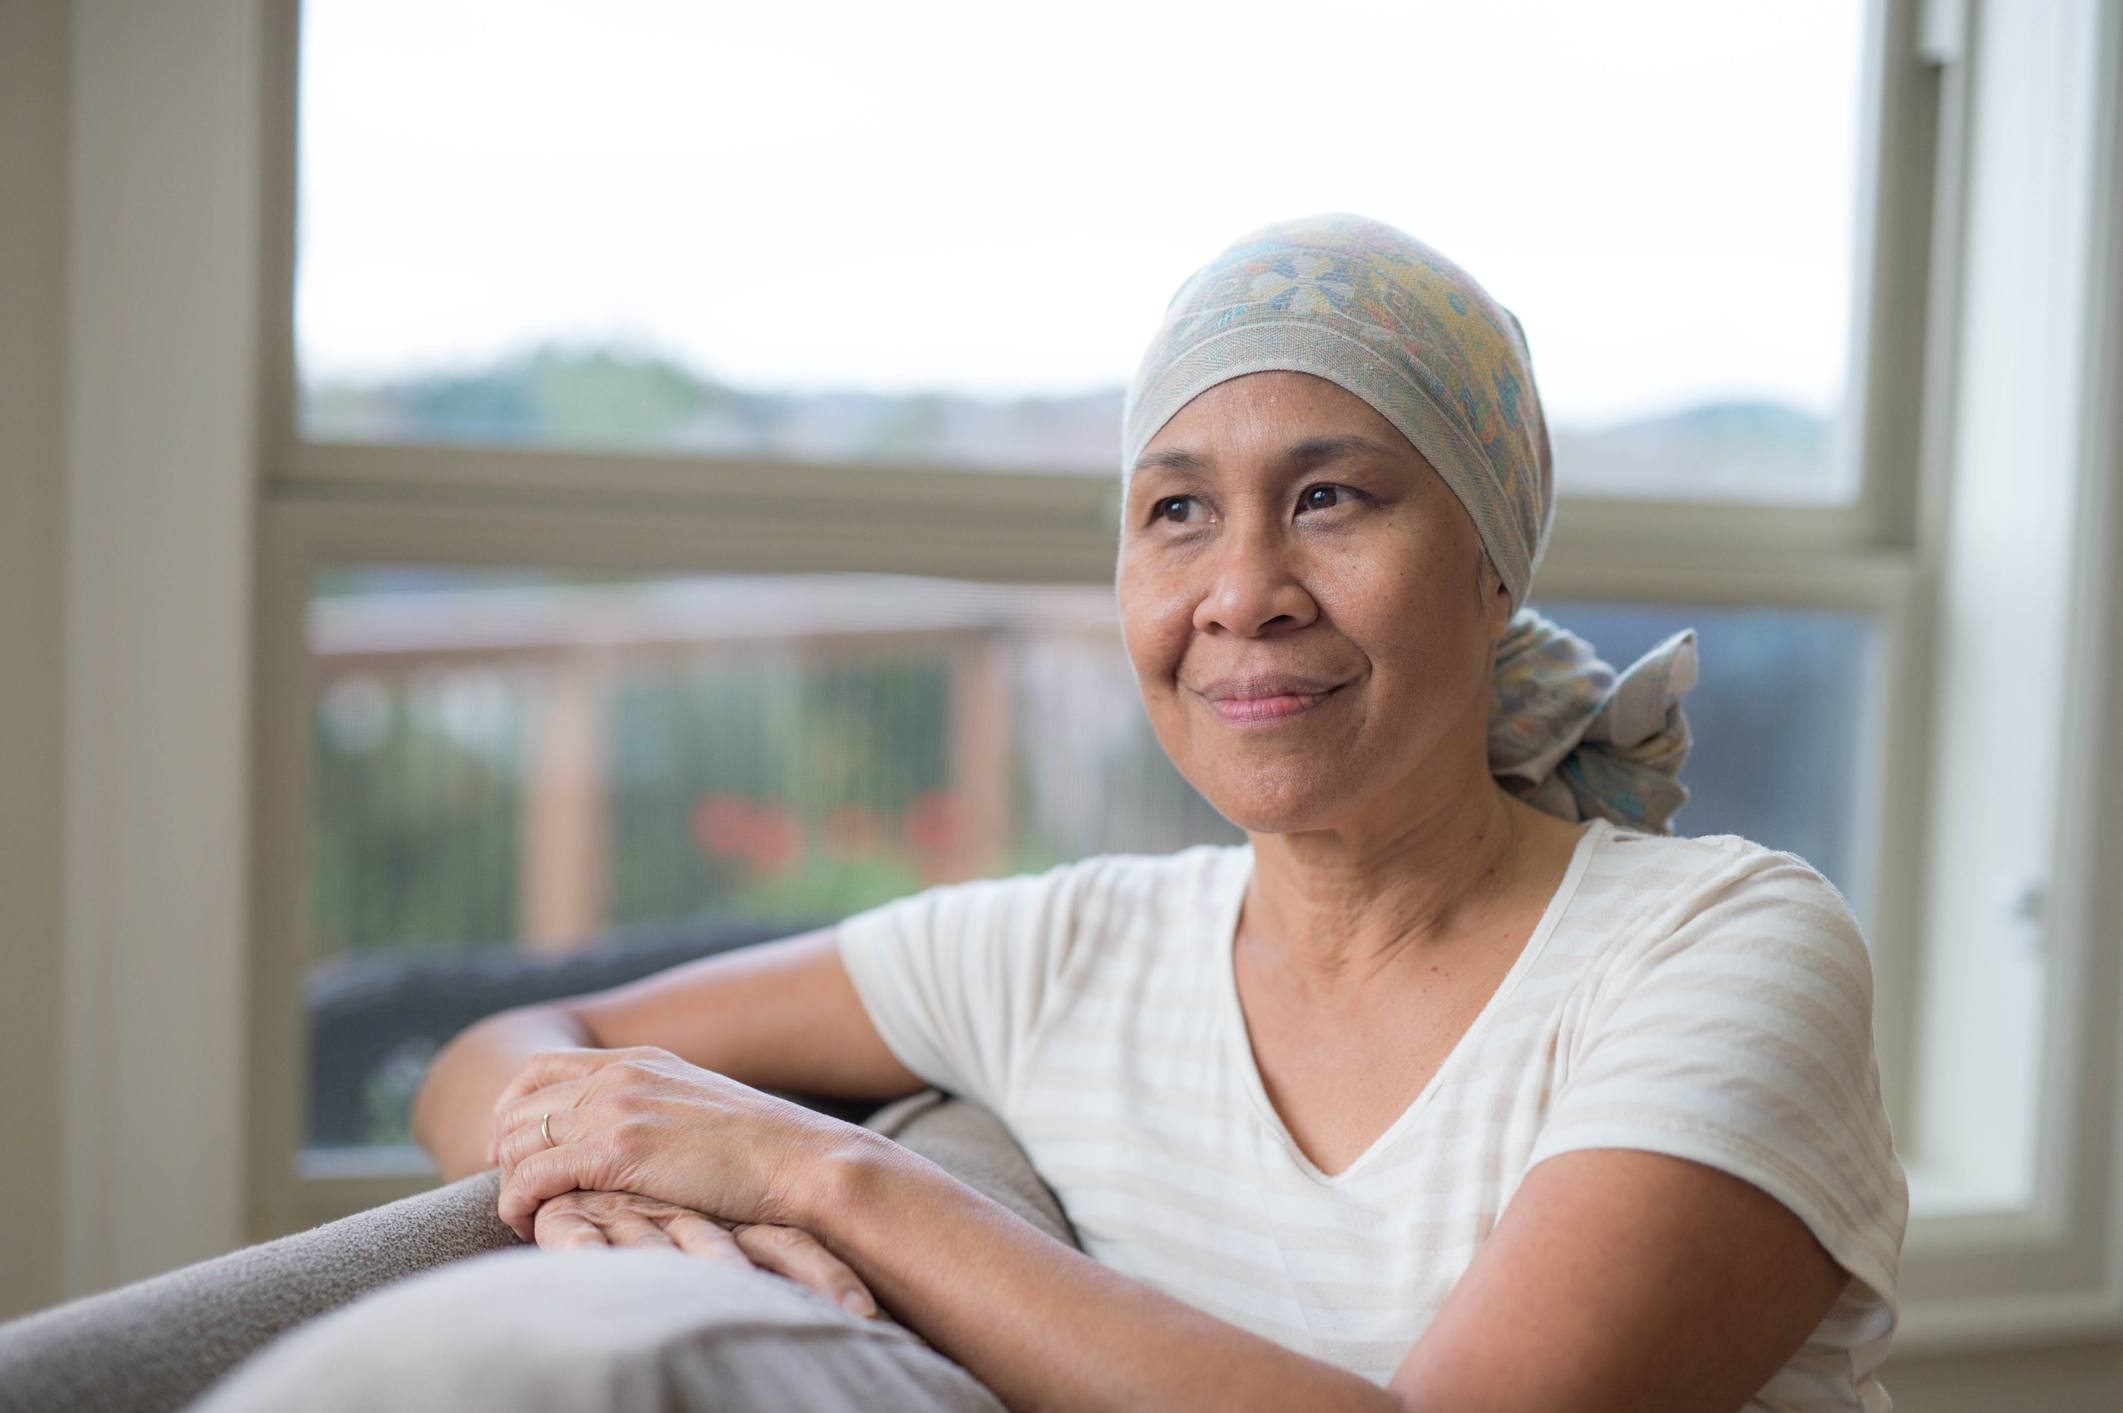 Woman sitting on a couch wearing a headwrap